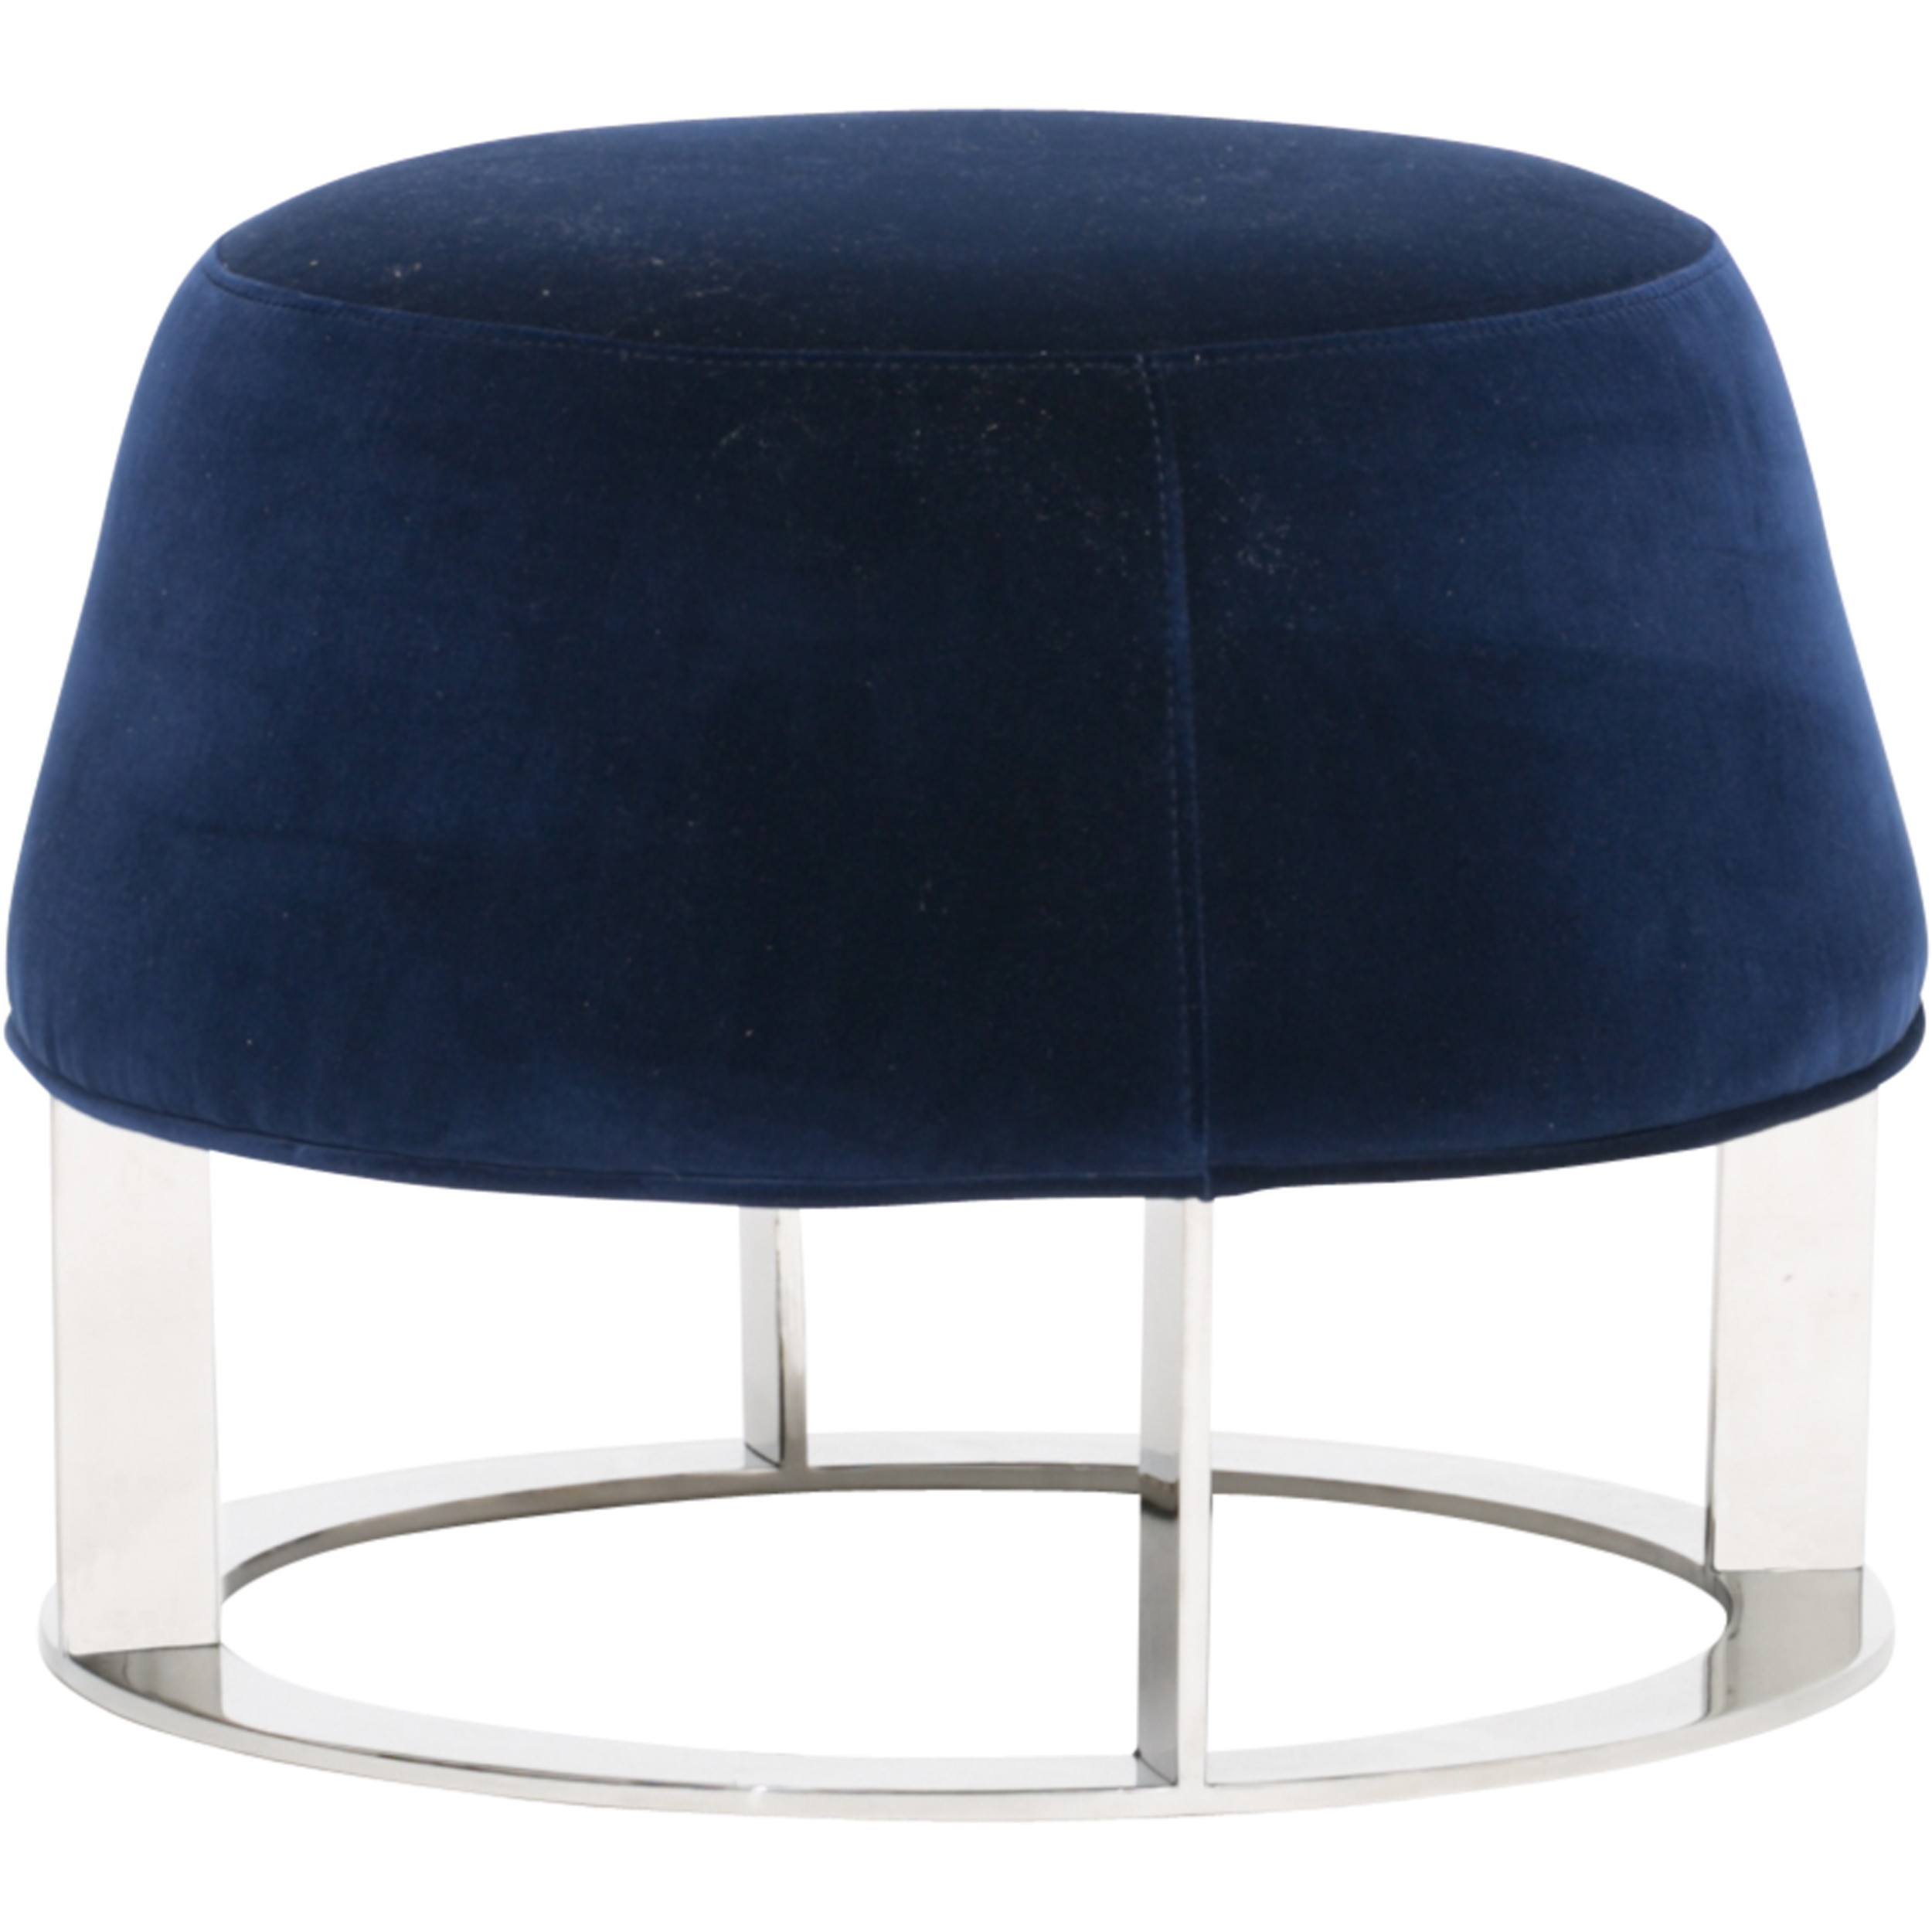 cavo small ott giotto blue cocktail accent tables table furniture glass top coffee antique concrete outdoor bunnings pottery barn kitchen sets round gold side west elm floating